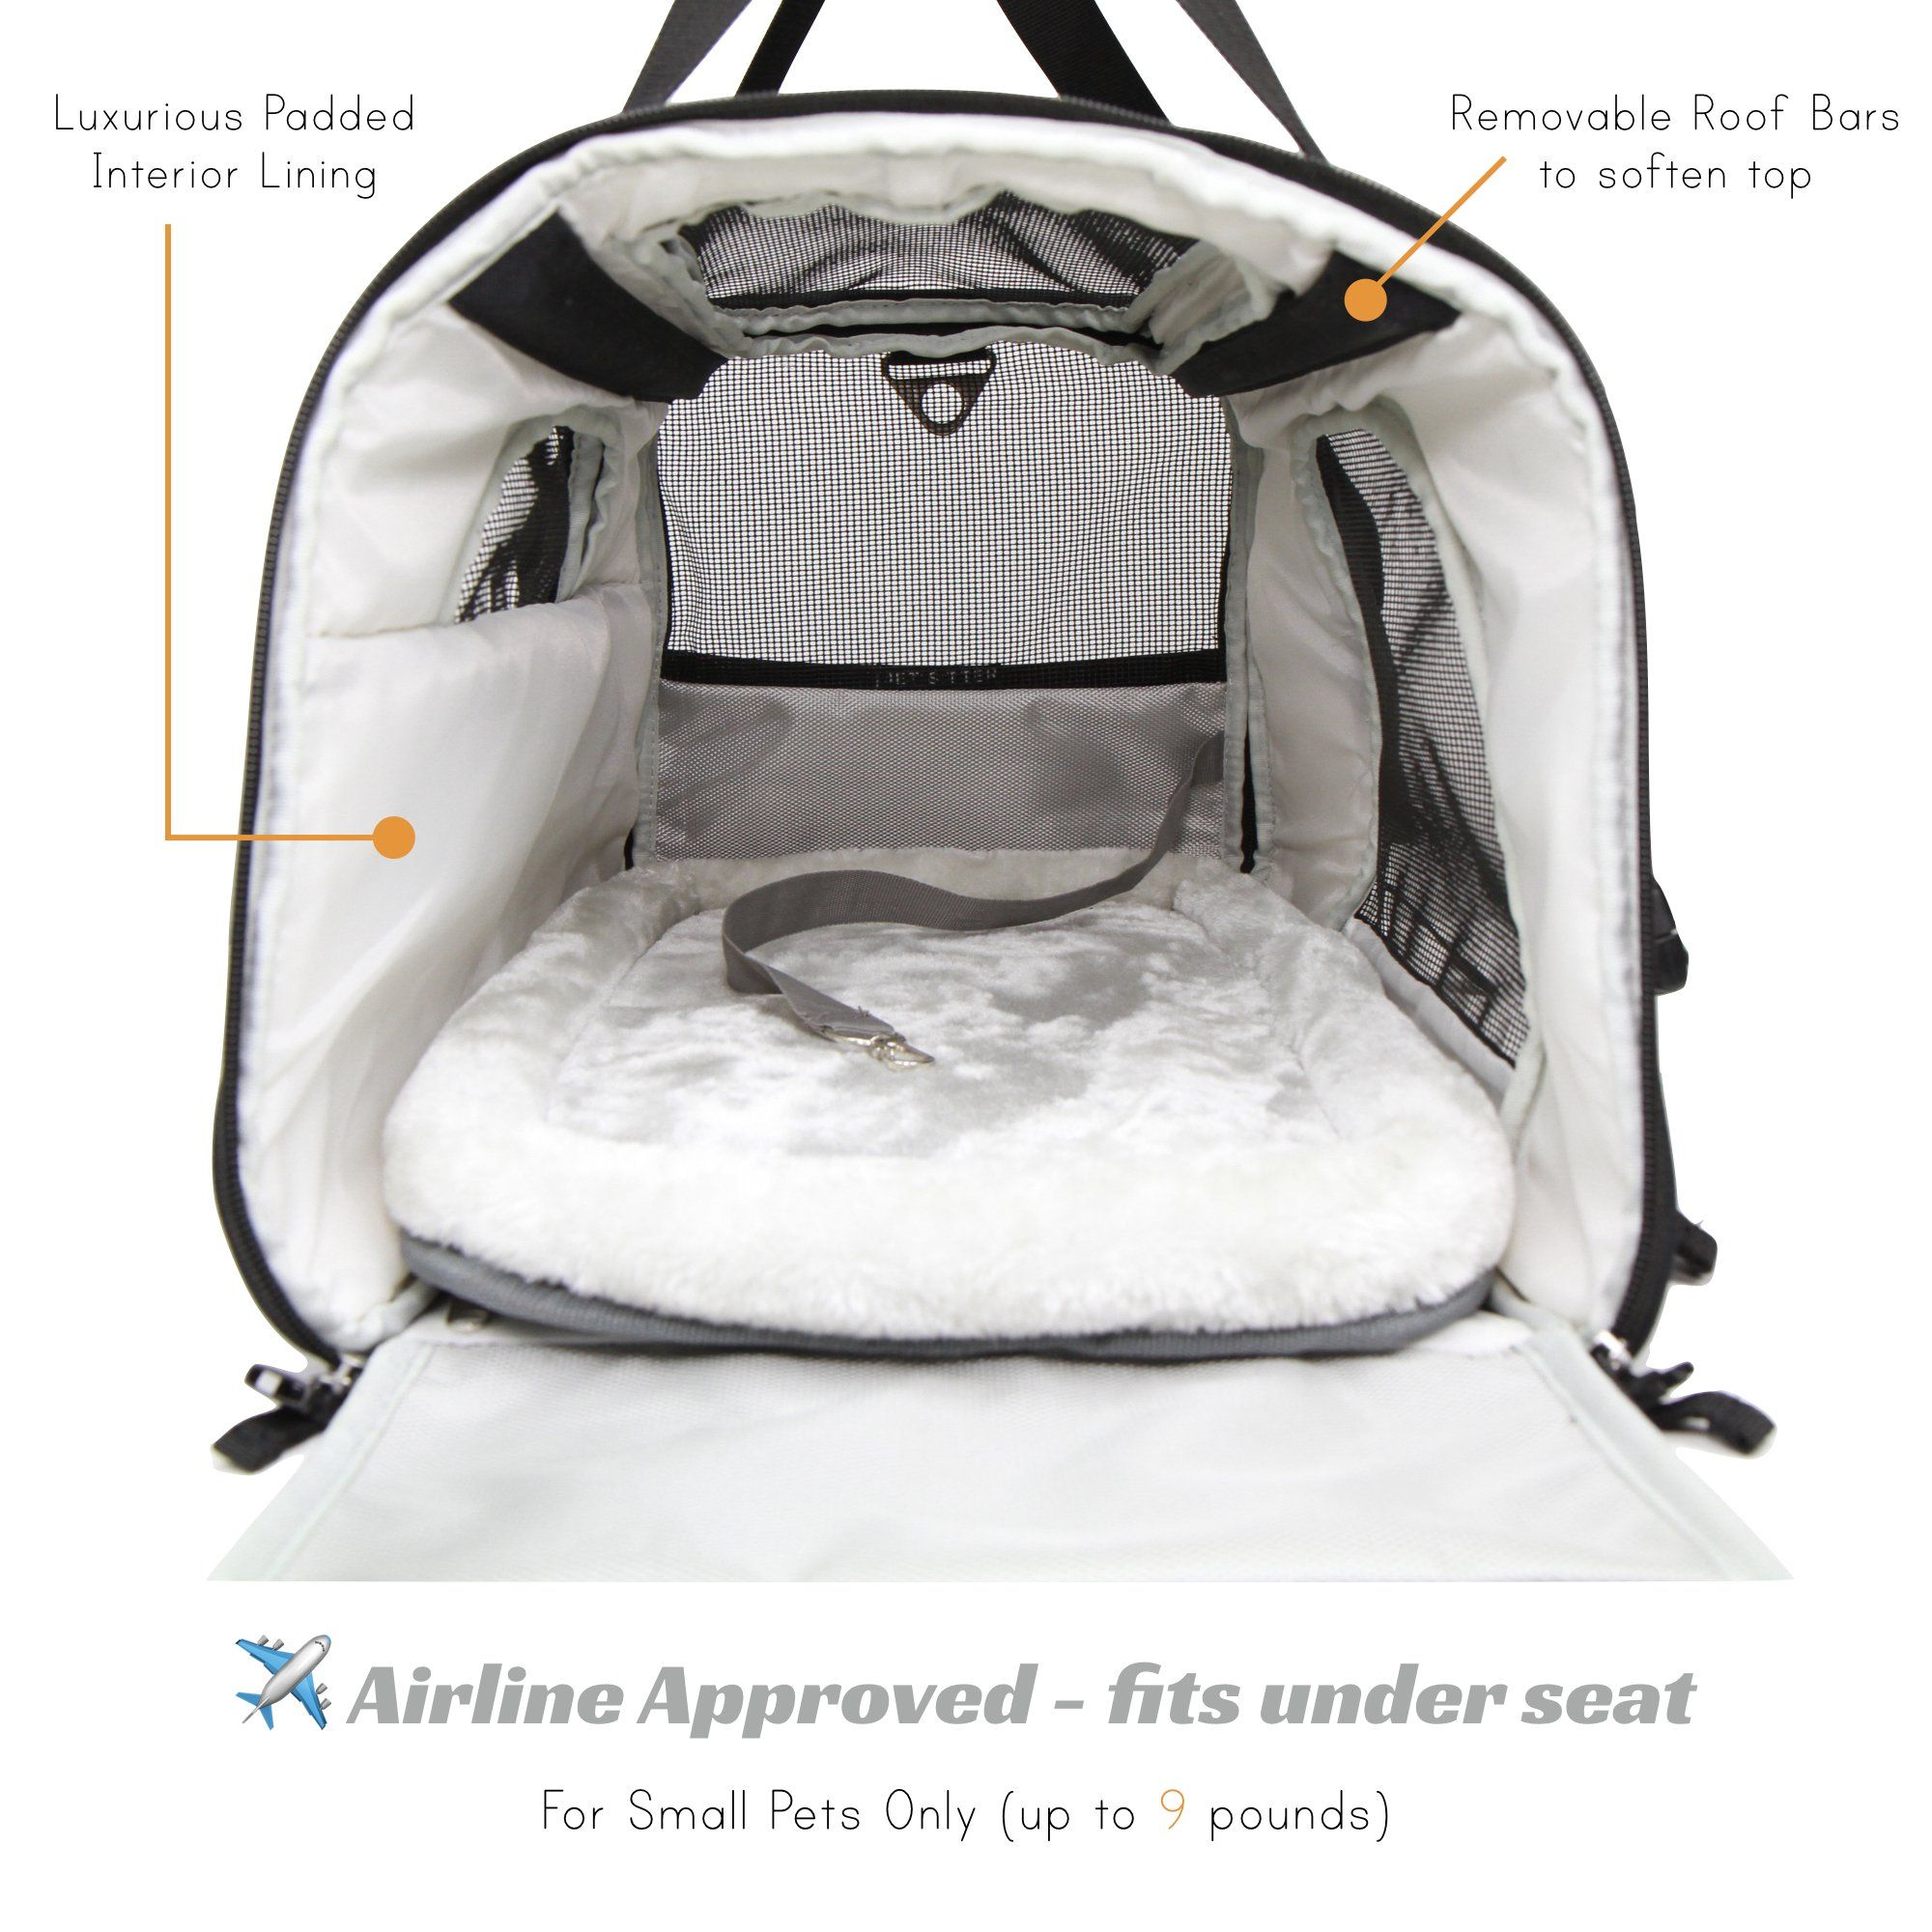 Pet Carrier Bag Amazon Jet Sitter Super Fly Airline Approved Pet Carrier Bag Tsa